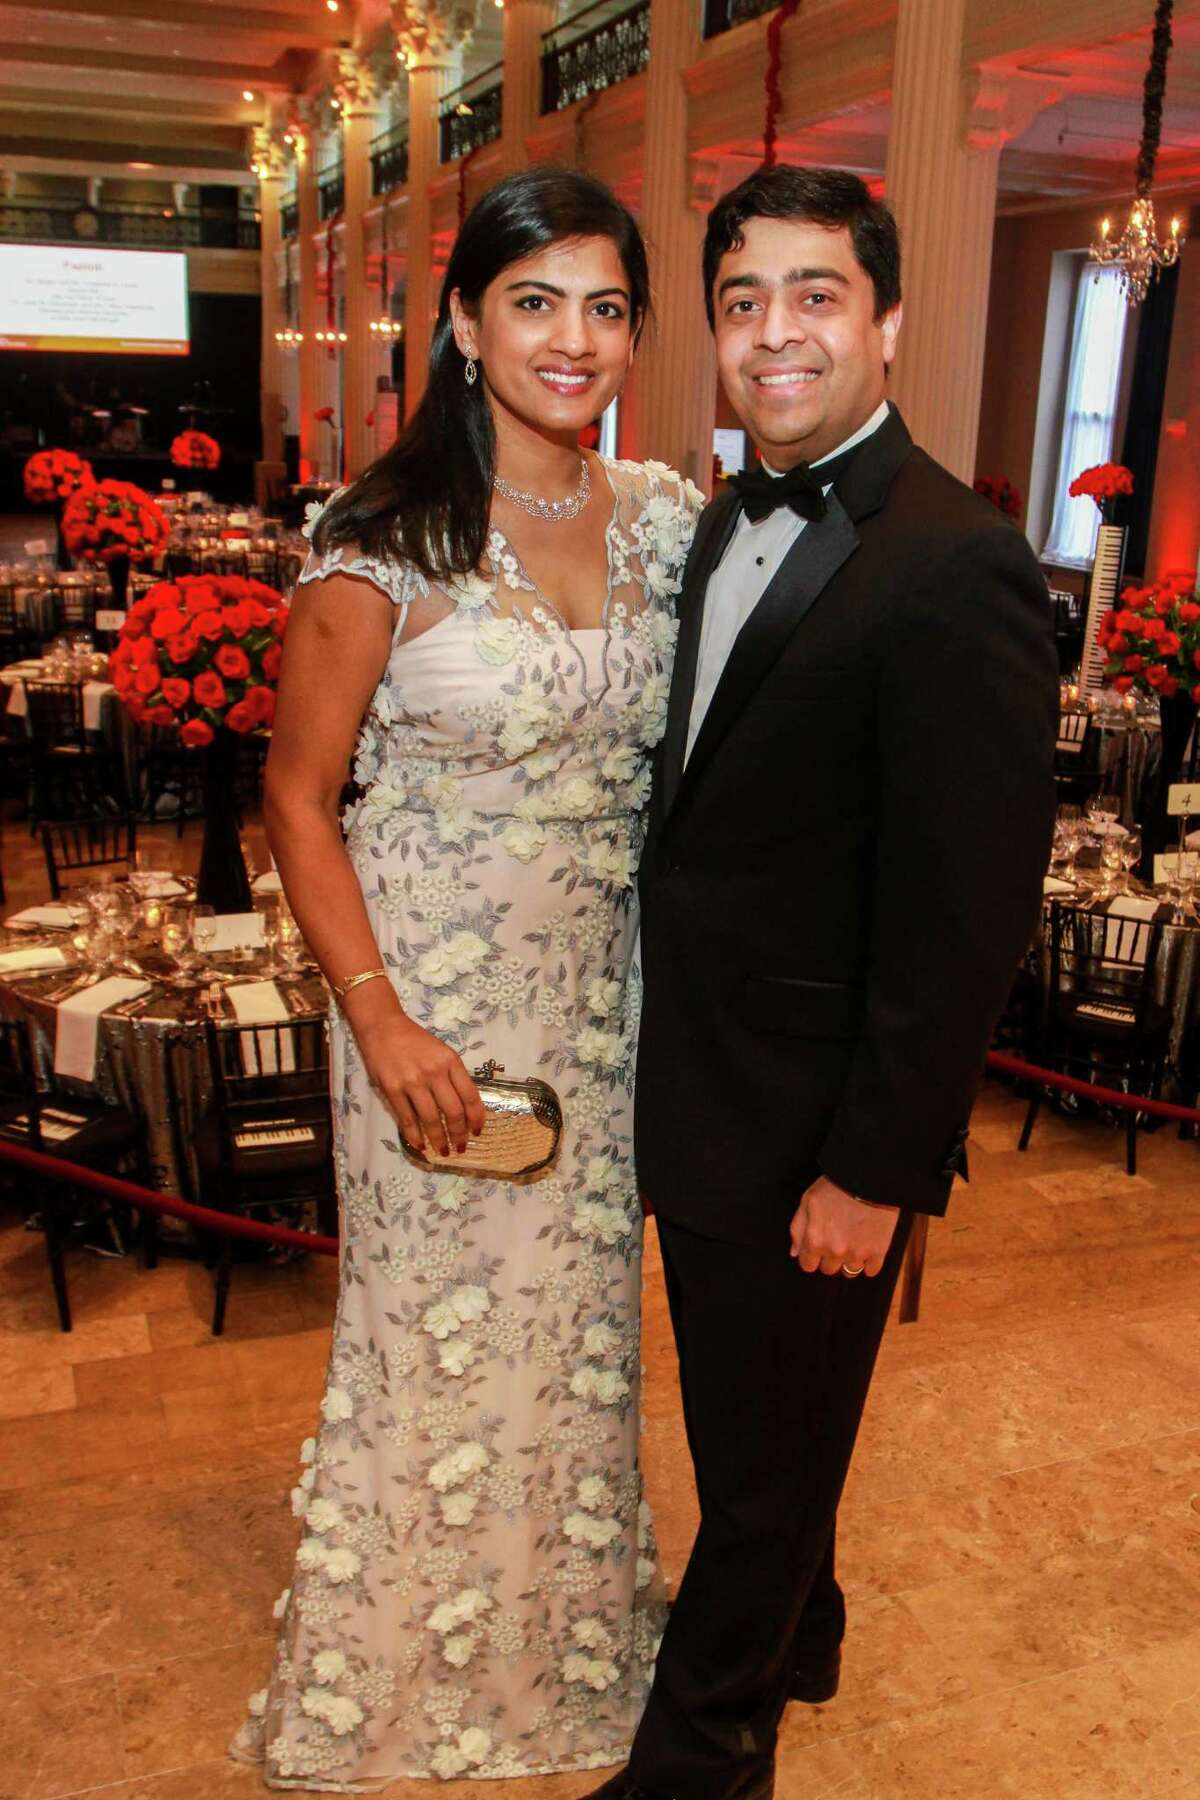 Ishwaria and Vivek Subbiah at the Corinthian for the Houston Symphony Opening Night Concert & Gala.